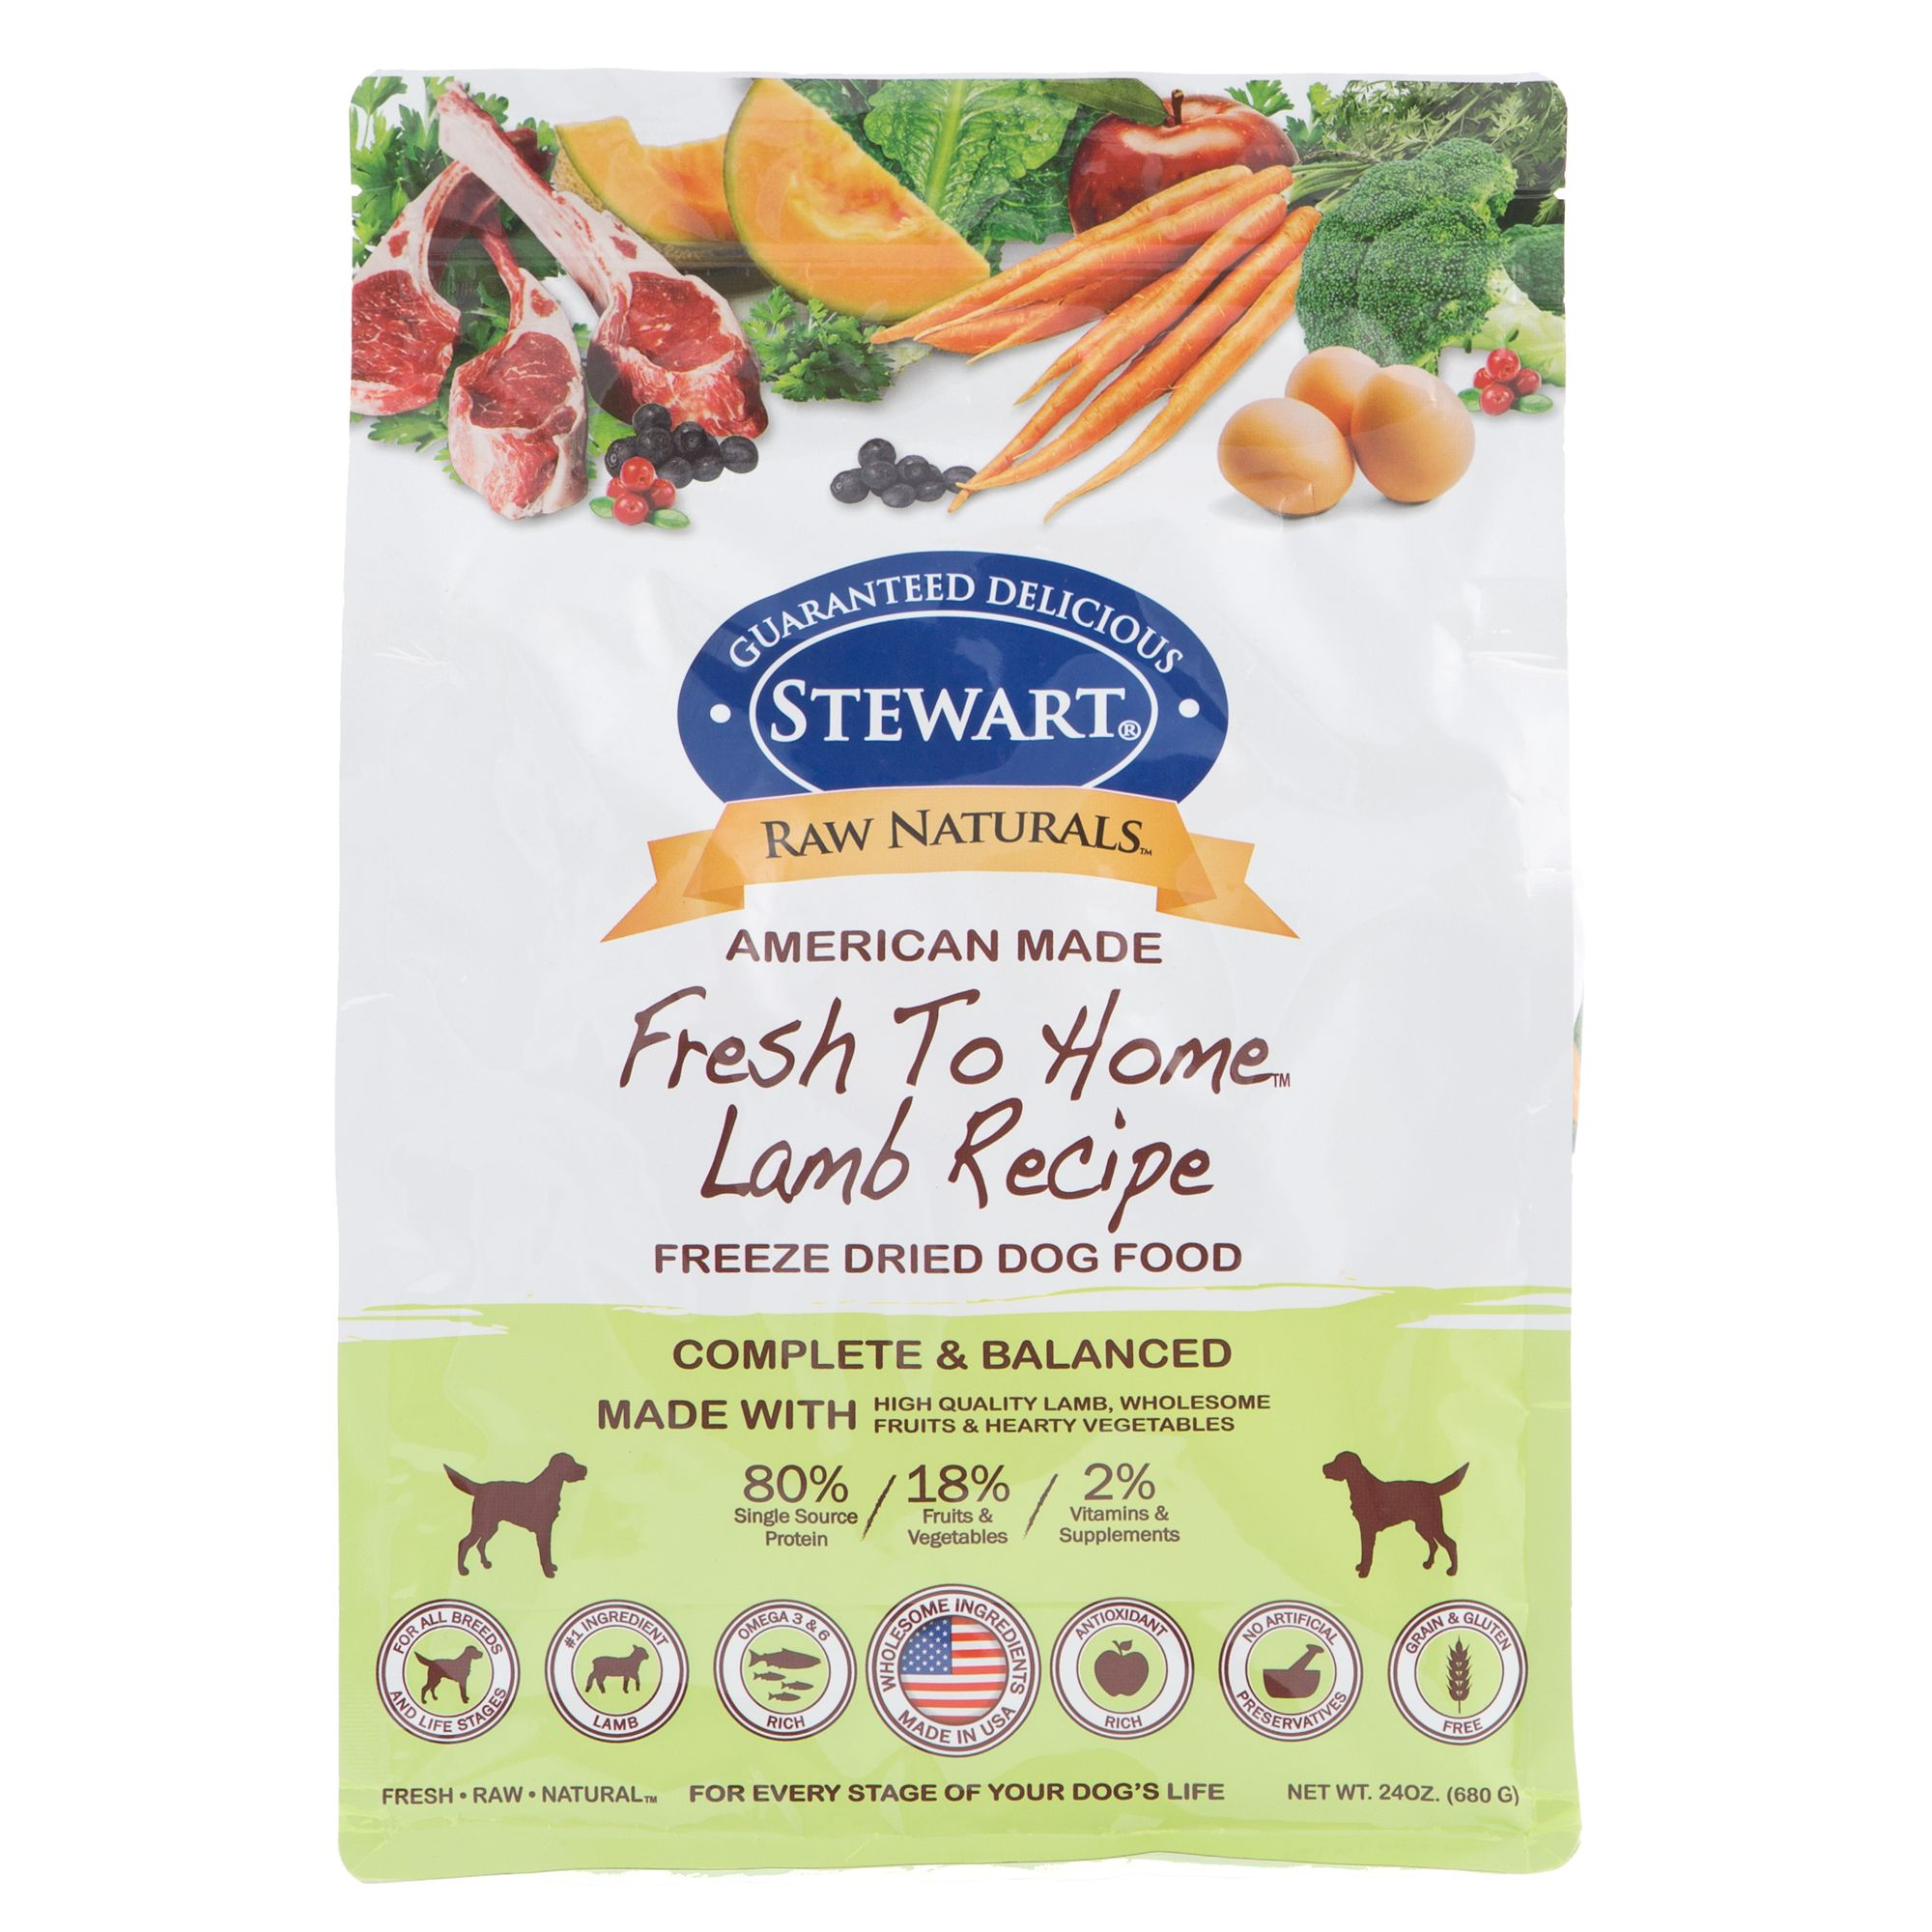 Stewart Raw Naturals Dog Food - Freeze Dried, Lamb size: 24 Oz 5260679